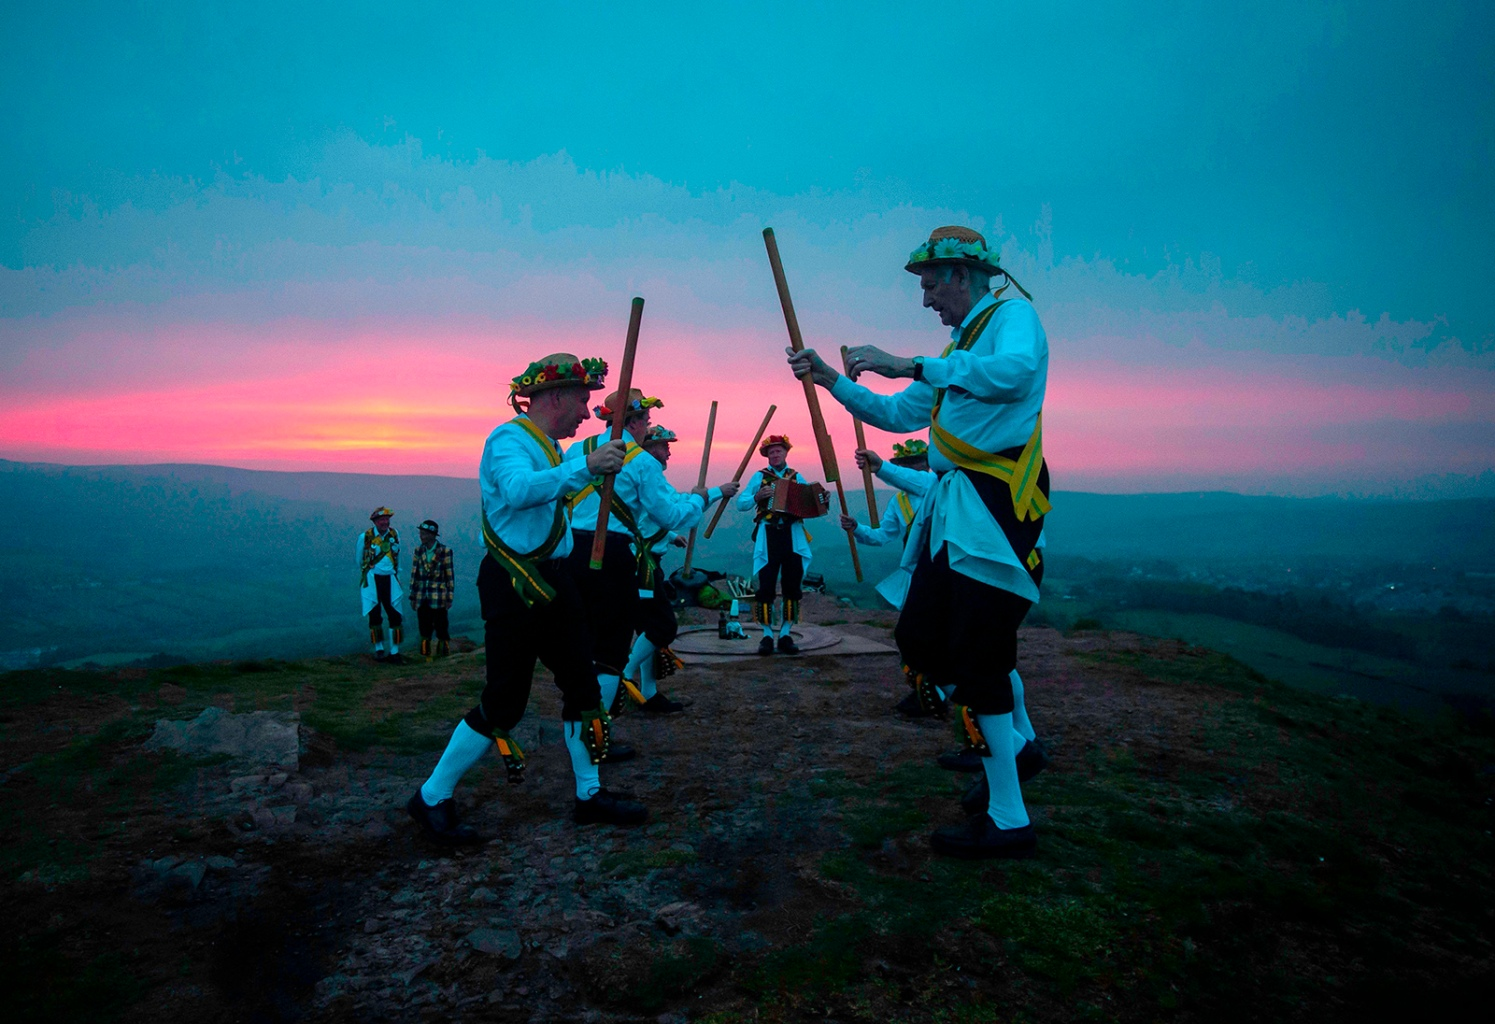 Members of the Chapel-en-le-Frith Morris Dancers dance atop the Eccles Pike at High Peak in Derbyshire, England, before sunrise on May 1. The dancers perform annually at the peak as part of the ancient Celtic festival Beltane, celebrated on May Day or the beginning of summer. LINDSEY PARNABY/AFP/Getty Images